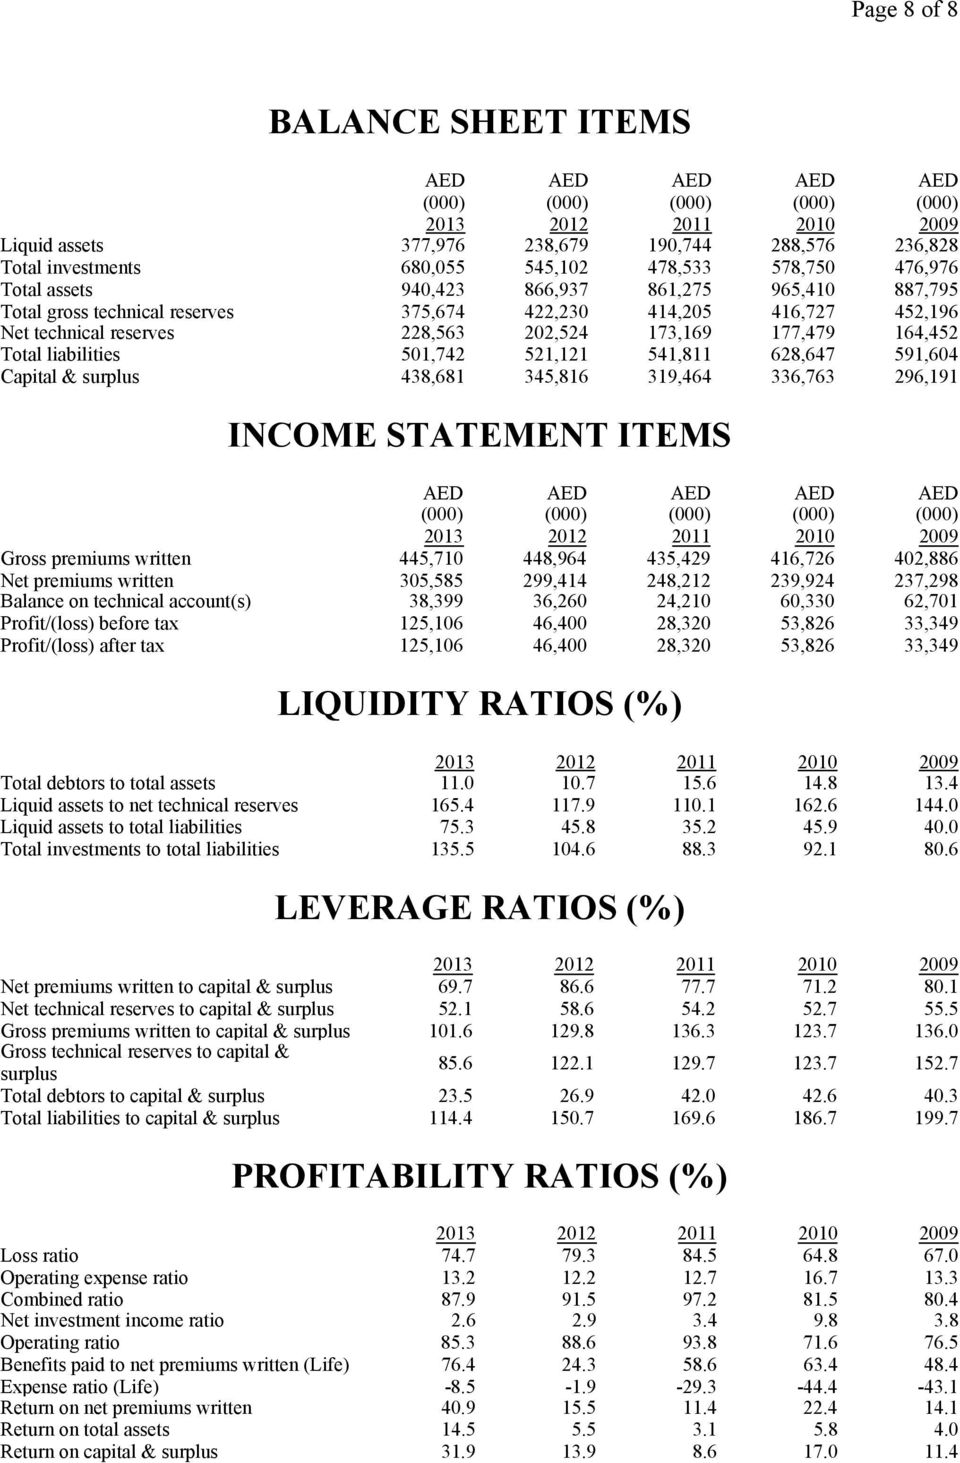 501,742 521,121 541,811 628,647 591,604 Capital & surplus 438,681 345,816 319,464 336,763 296,191 INCOME STATEMENT ITEMS AED AED AED AED AED (000) (000) (000) (000) (000) Gross premiums written